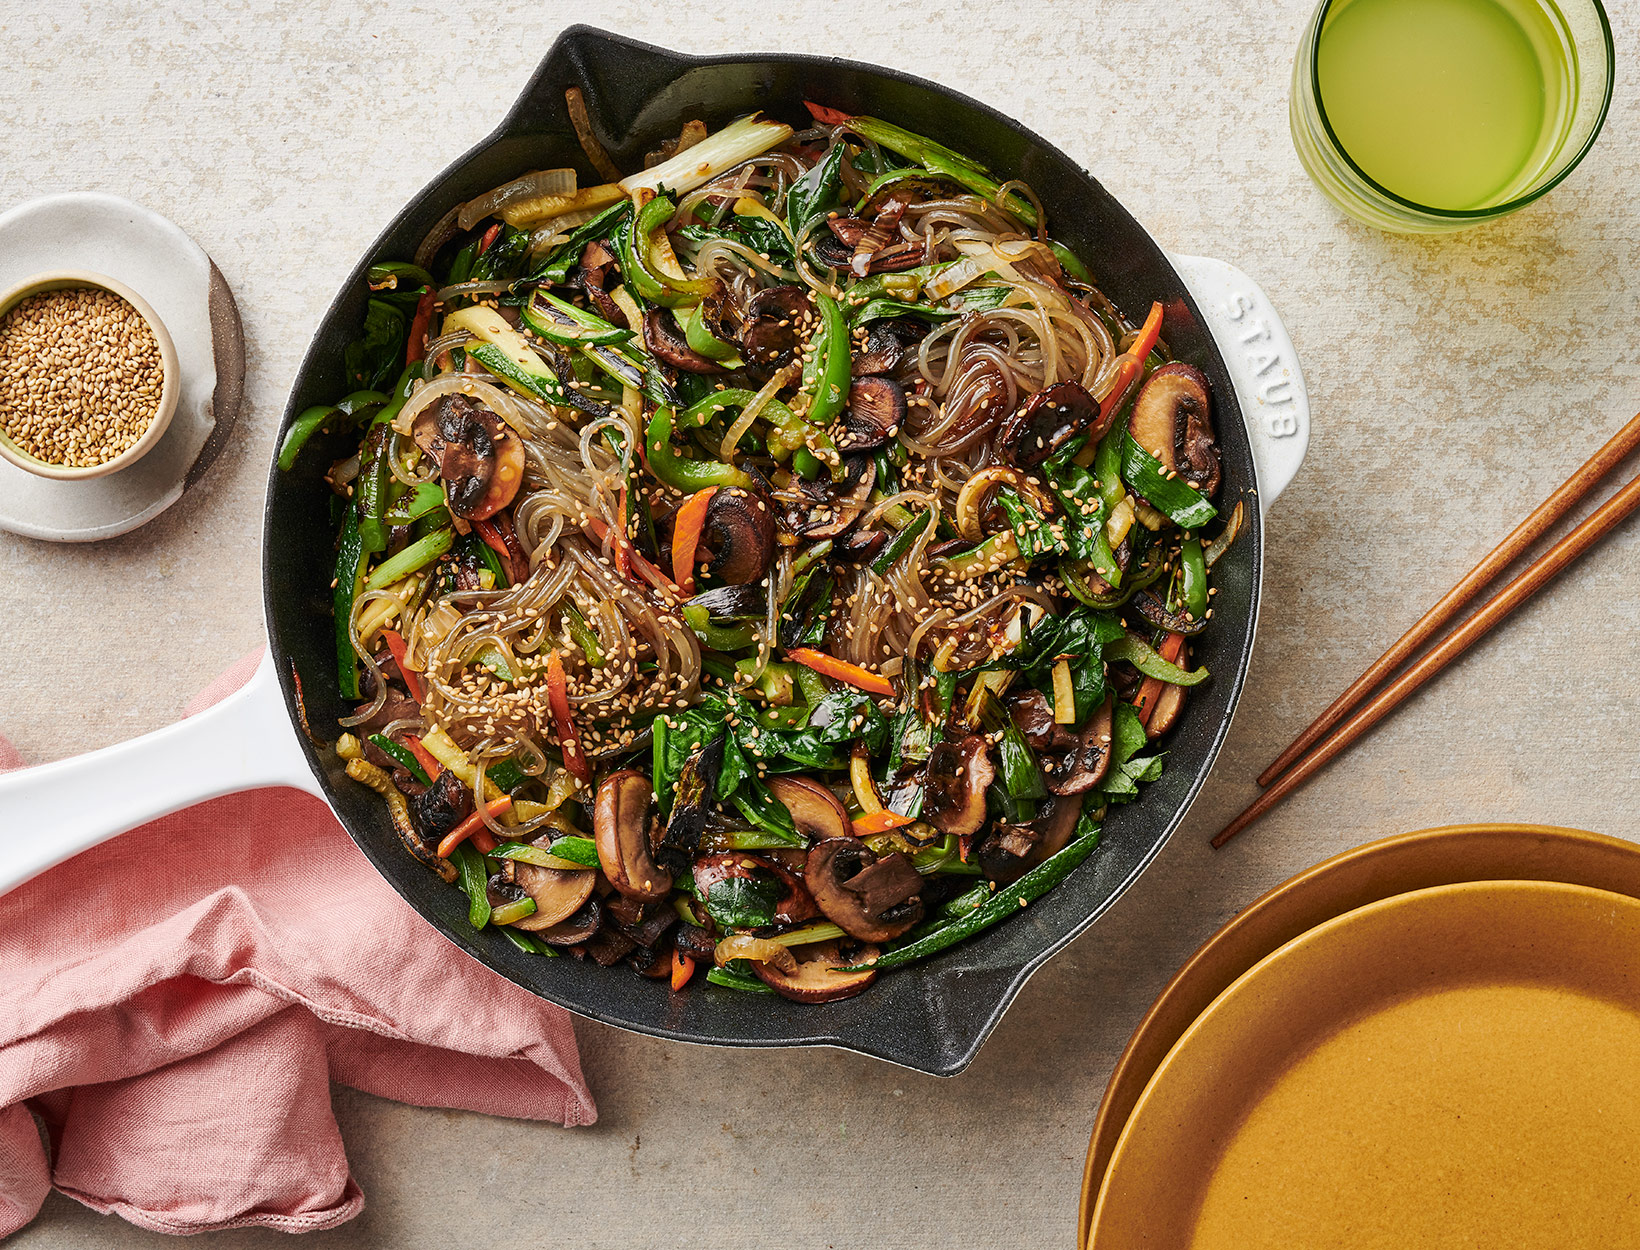 Kitchen-Sink Korean Noodle Stir-Fry